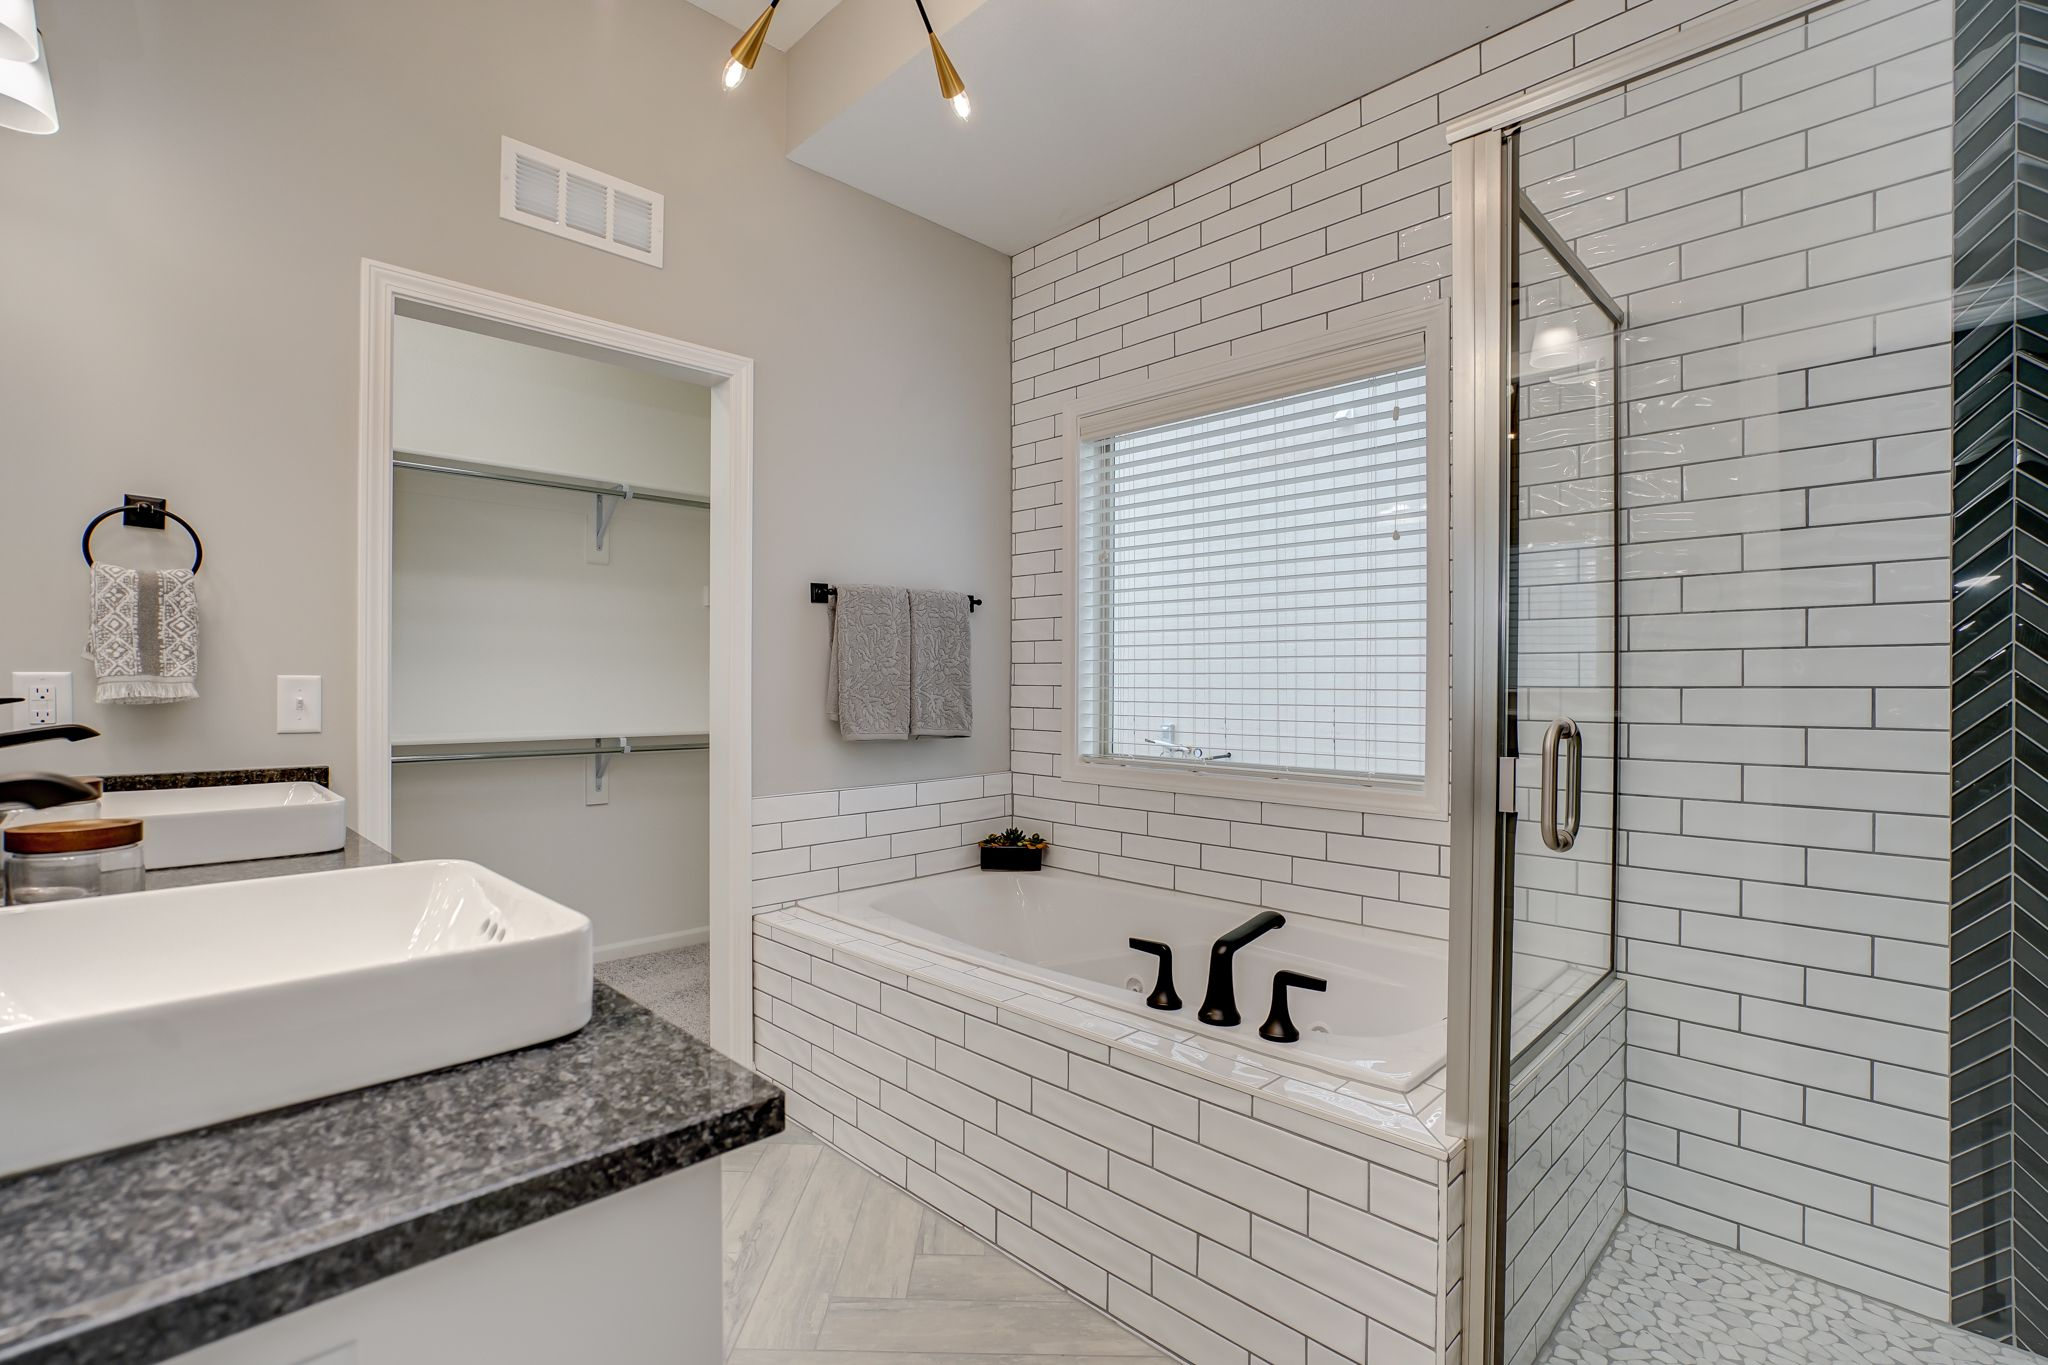 Bathroom featured in the Valentia By Summit Homes in Kansas City, MO